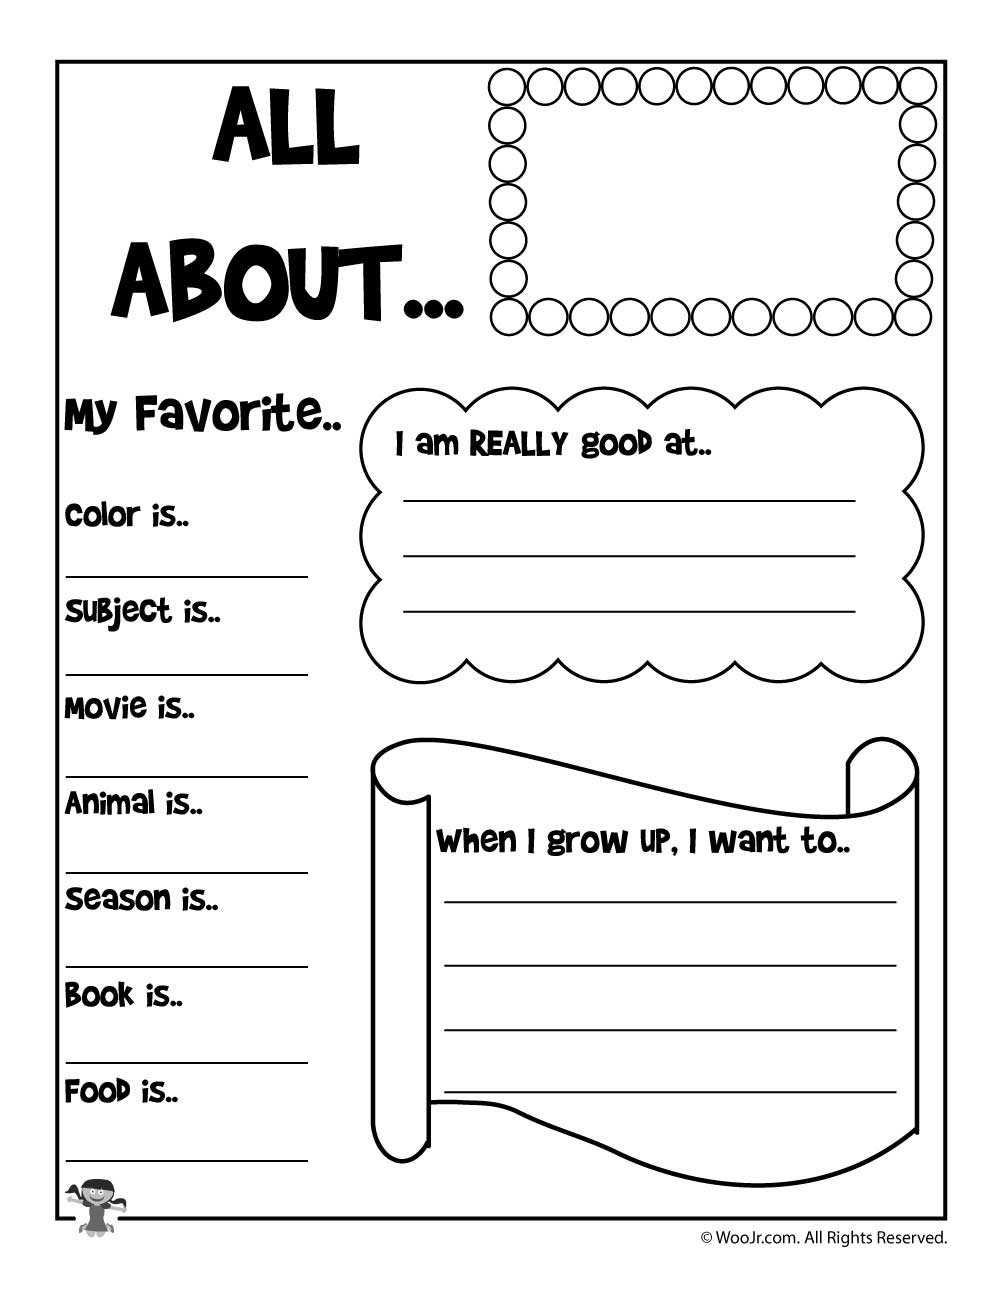 All about me printable worksheet woo jr kids activities for About me template for students